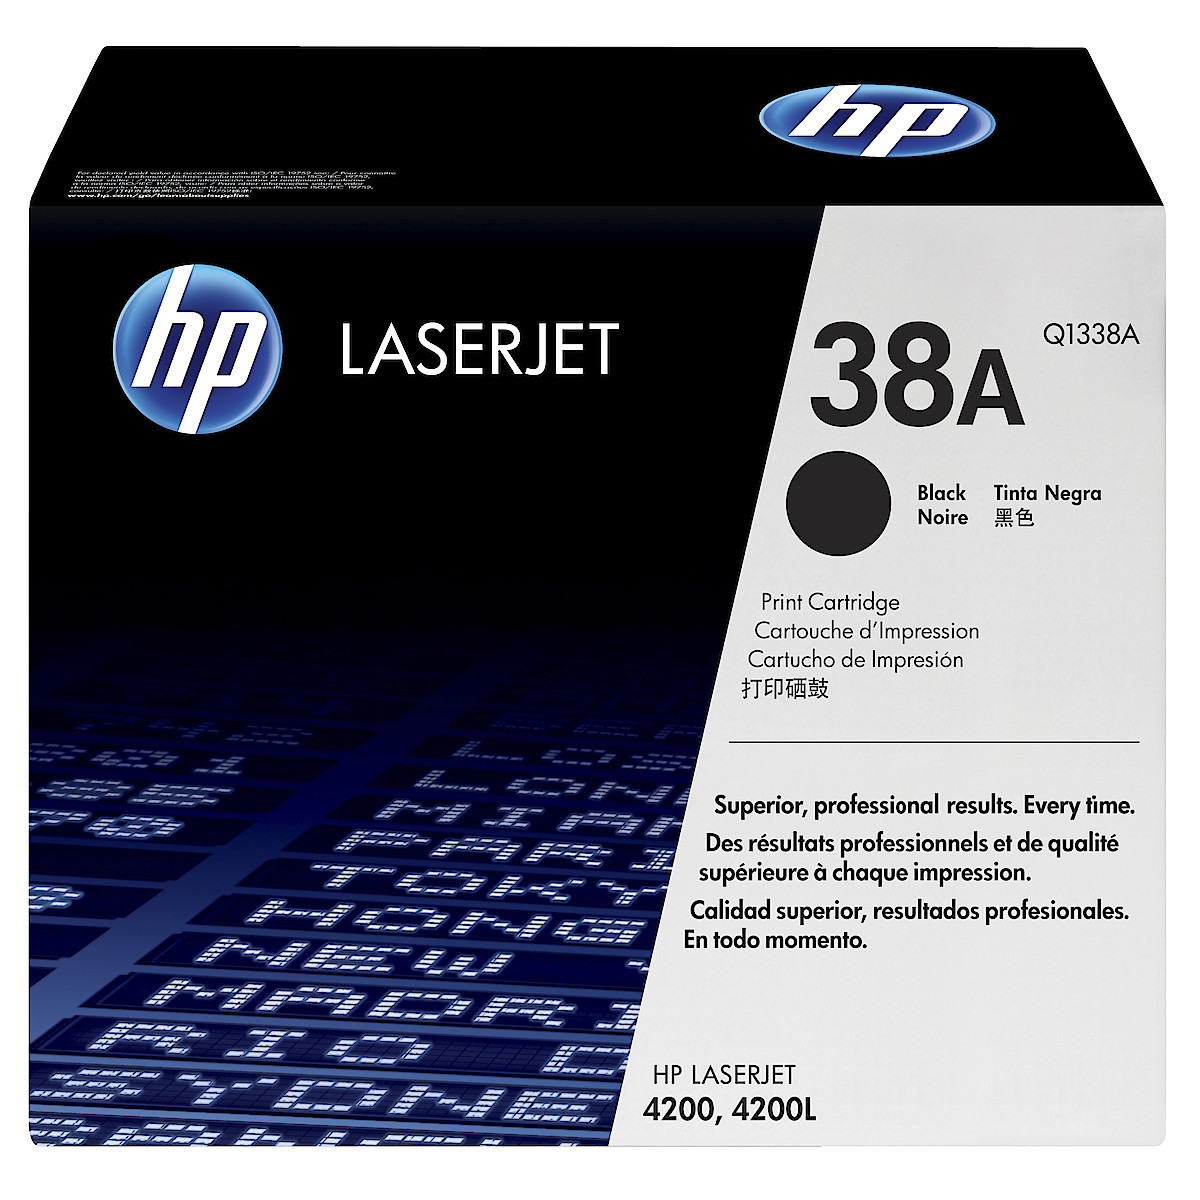 Toner for laserskrivere HP Q1338A